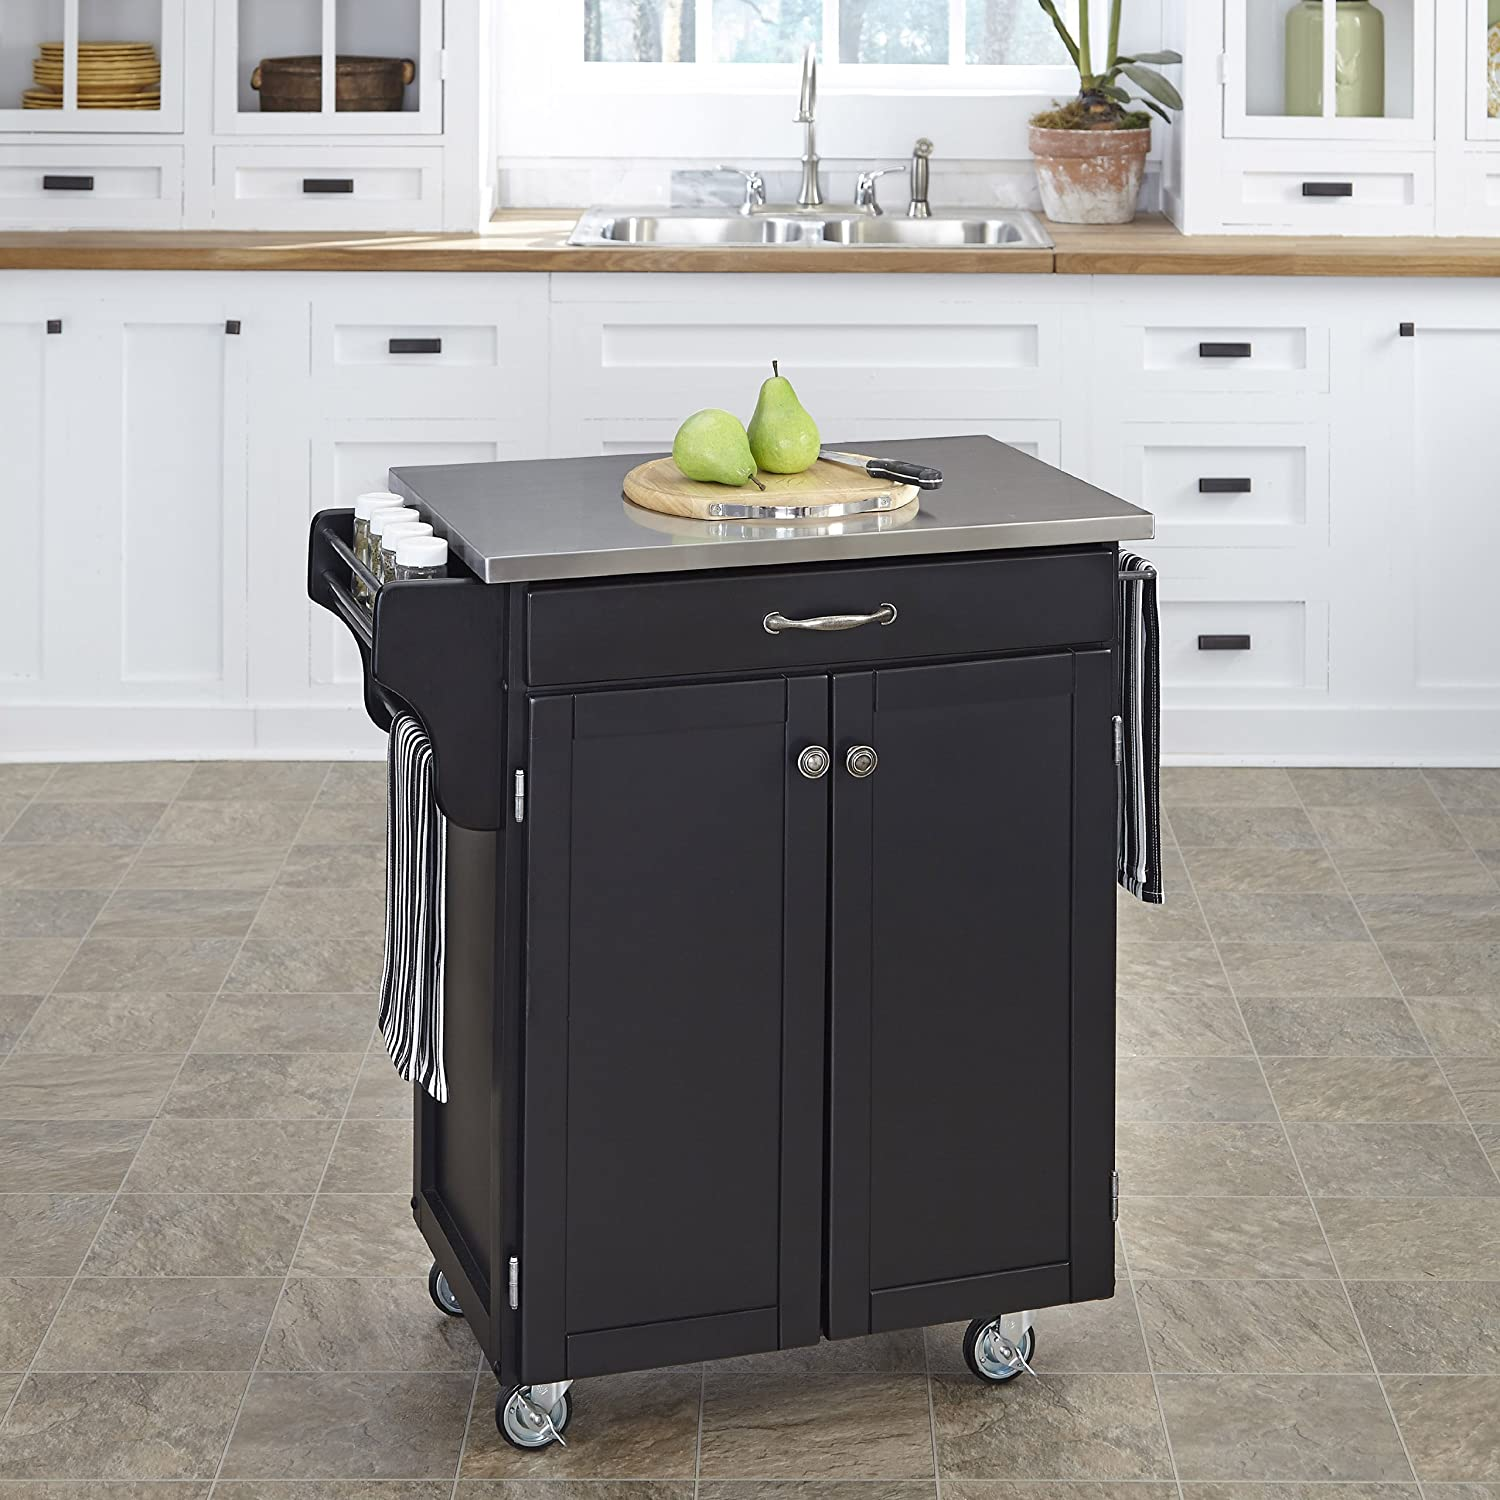 amazon com home styles 9001 0042 create a cart 9001 series amazon com home styles 9001 0042 create a cart 9001 series cuisine cart with stainless steel top black 32 1 2 inch kitchen islands carts